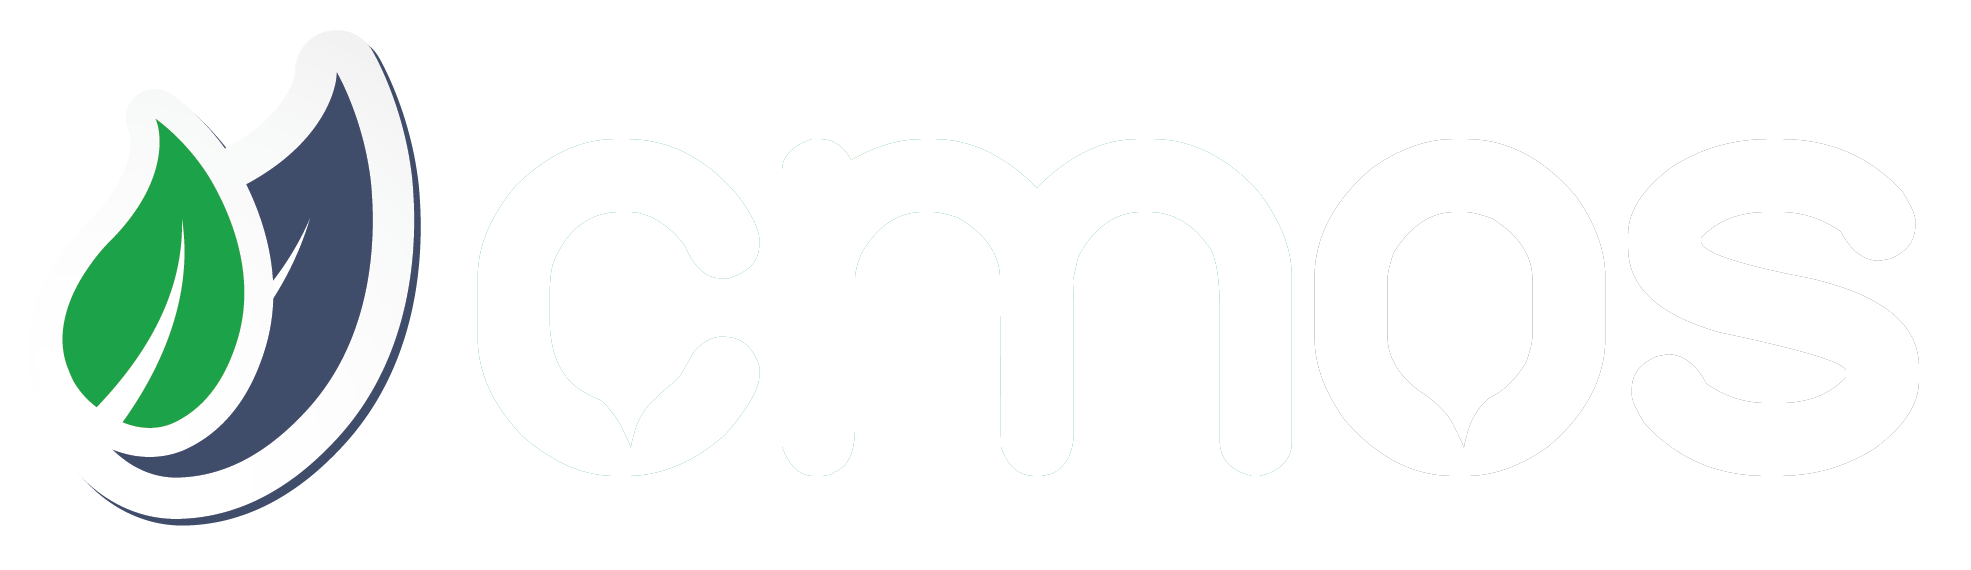 CMOS LOGO WHITE (for dark background)